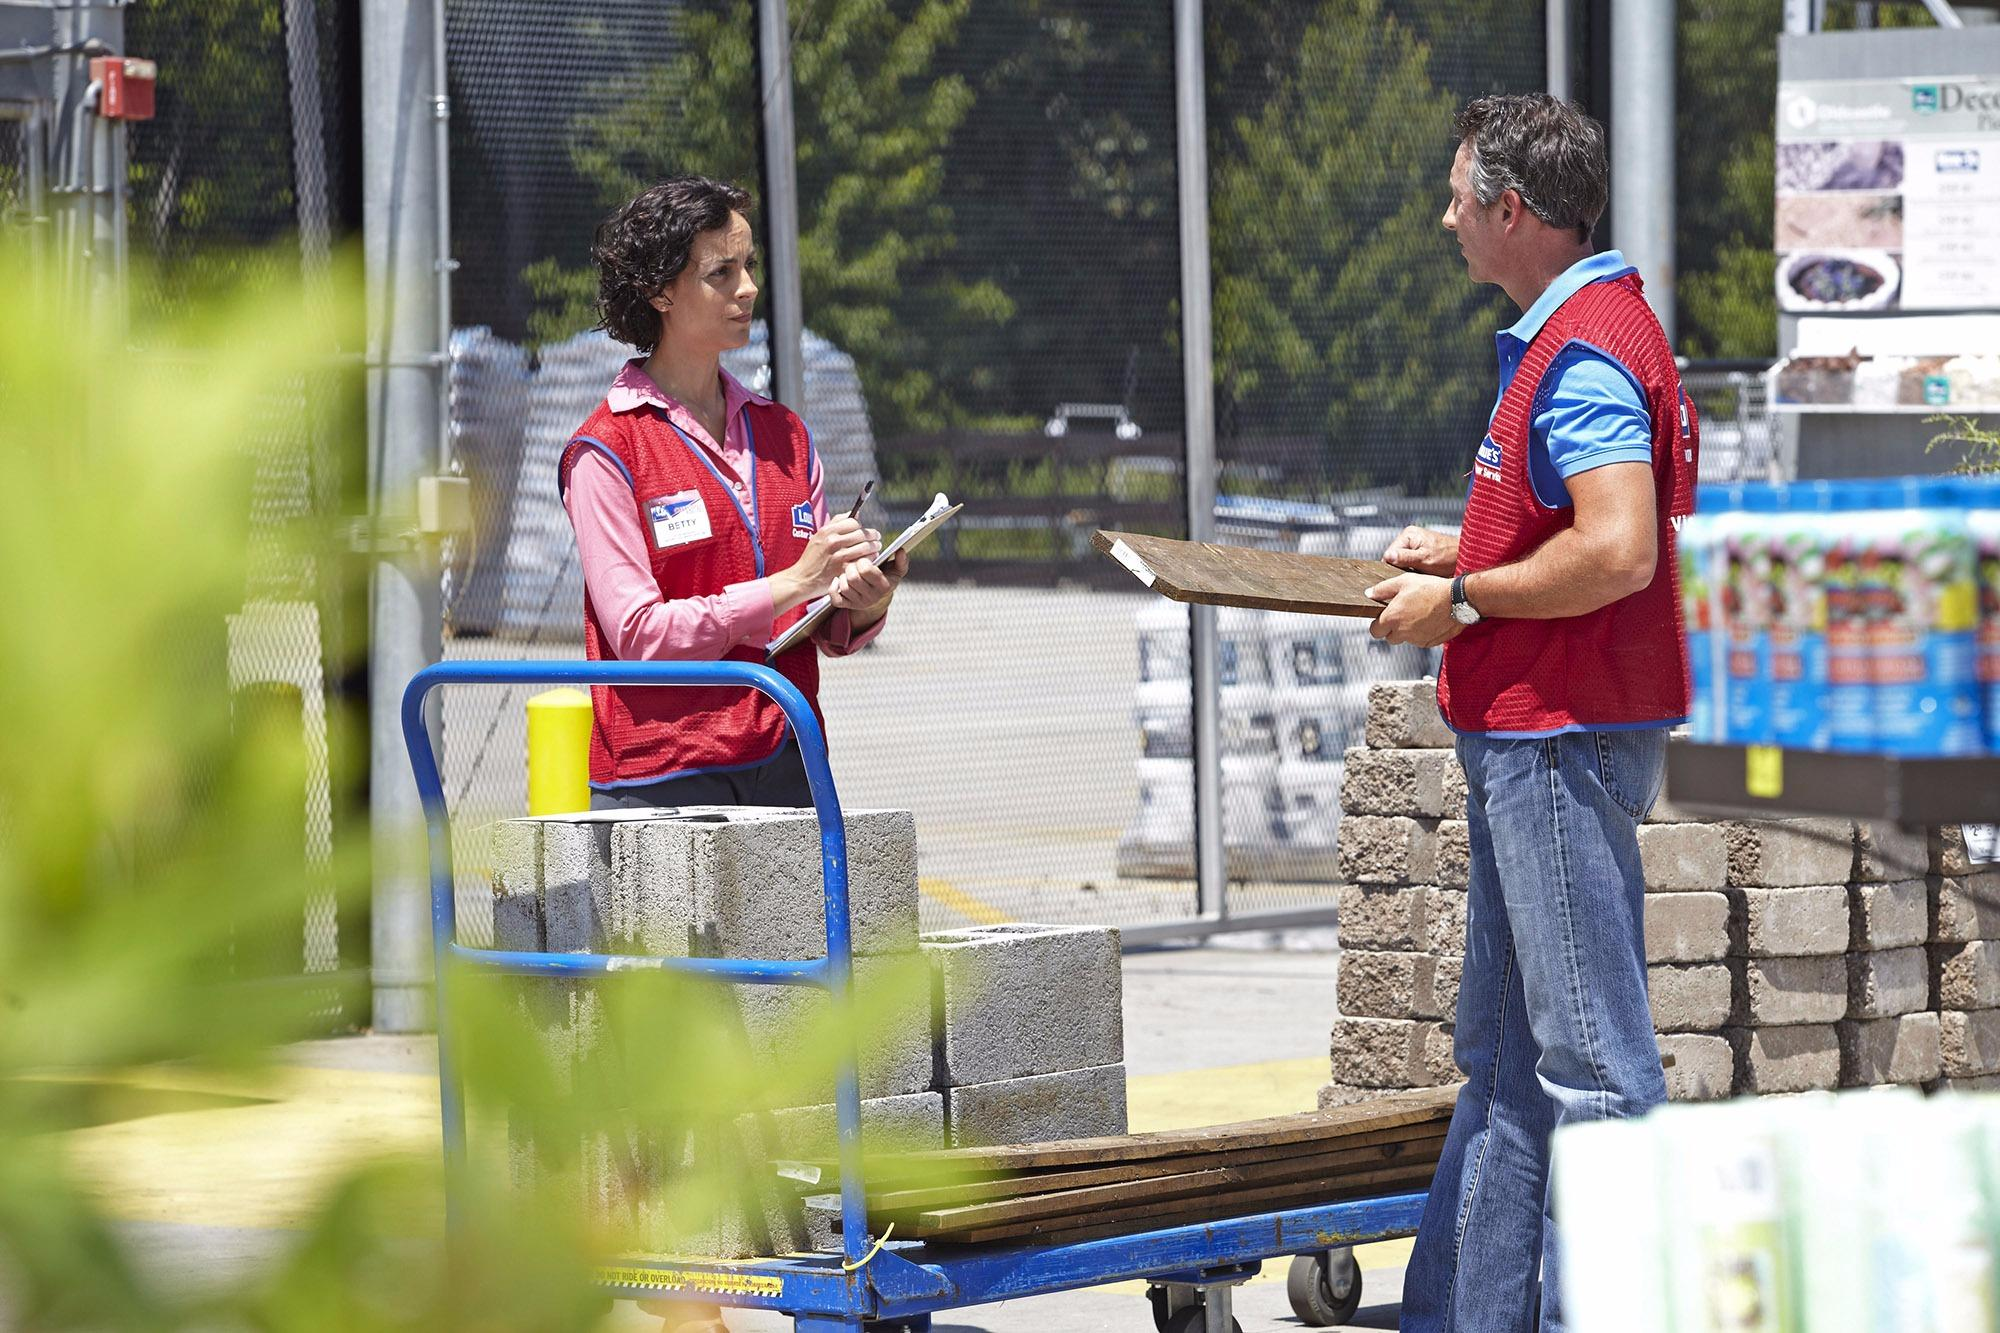 Lowe's Home Improvement image 2